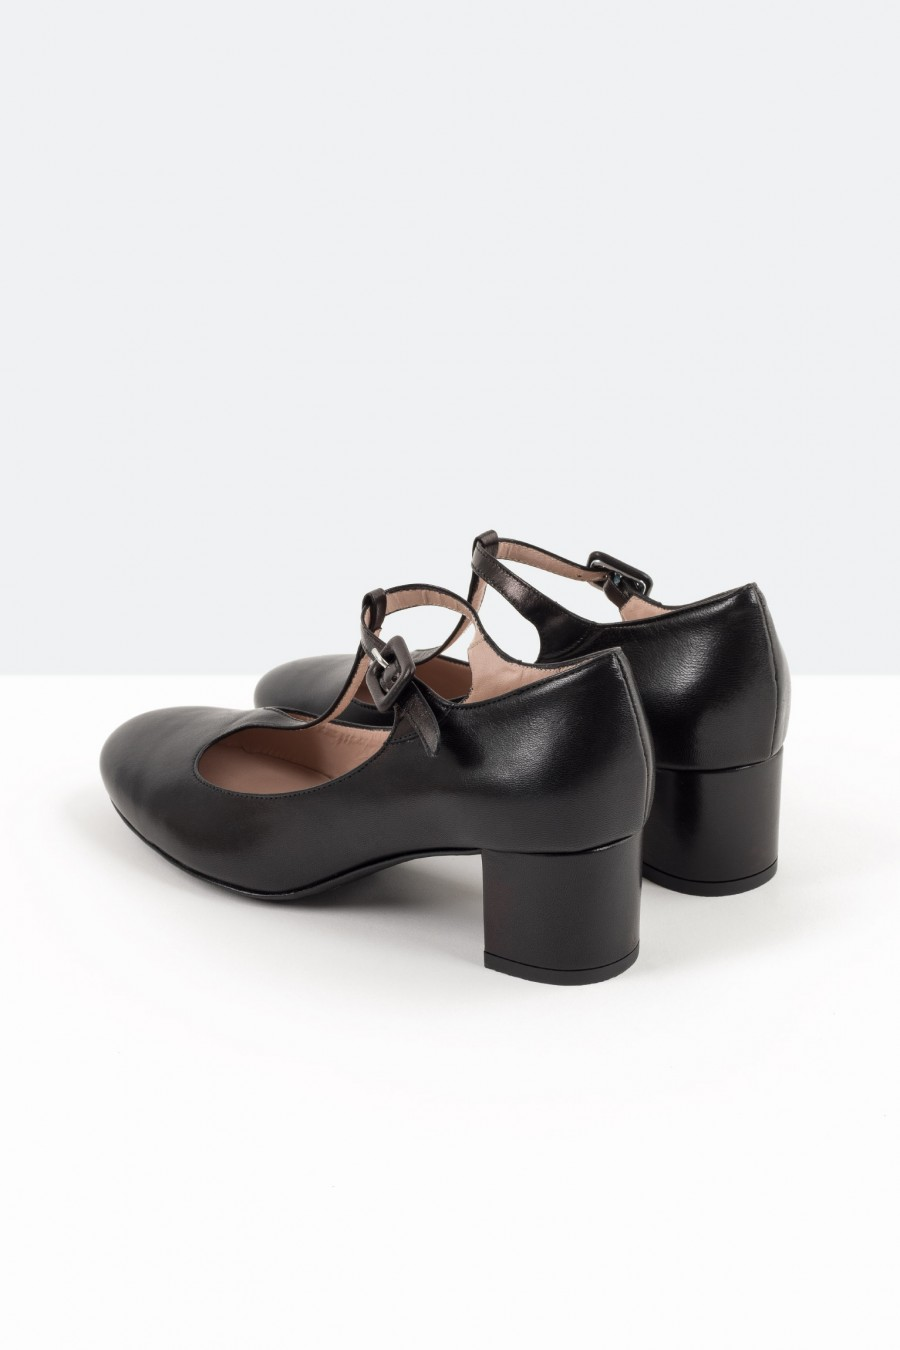 Black bebè shoes with covered buckle